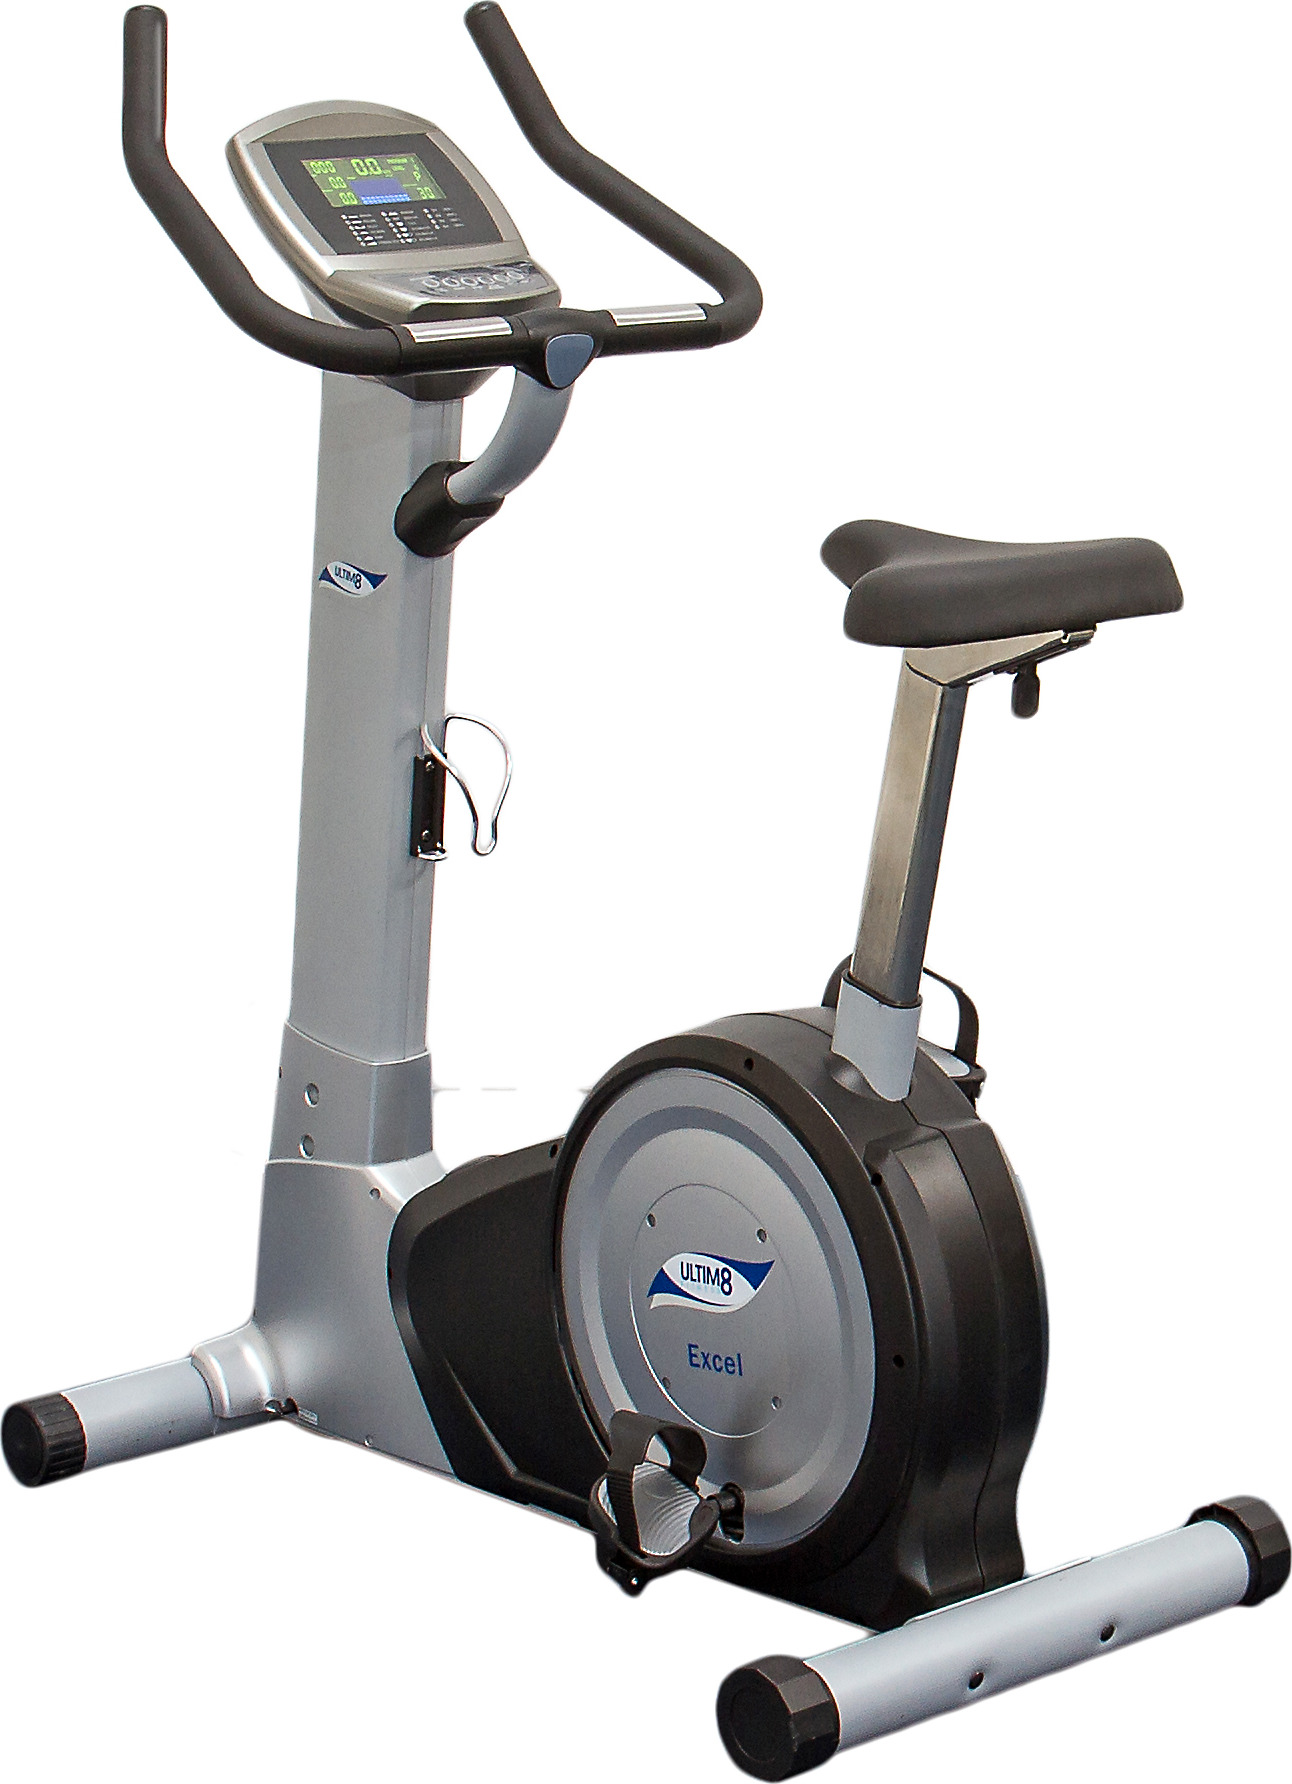 Hire Treadmill Exercise Bike And Concept 2 Combo Deal